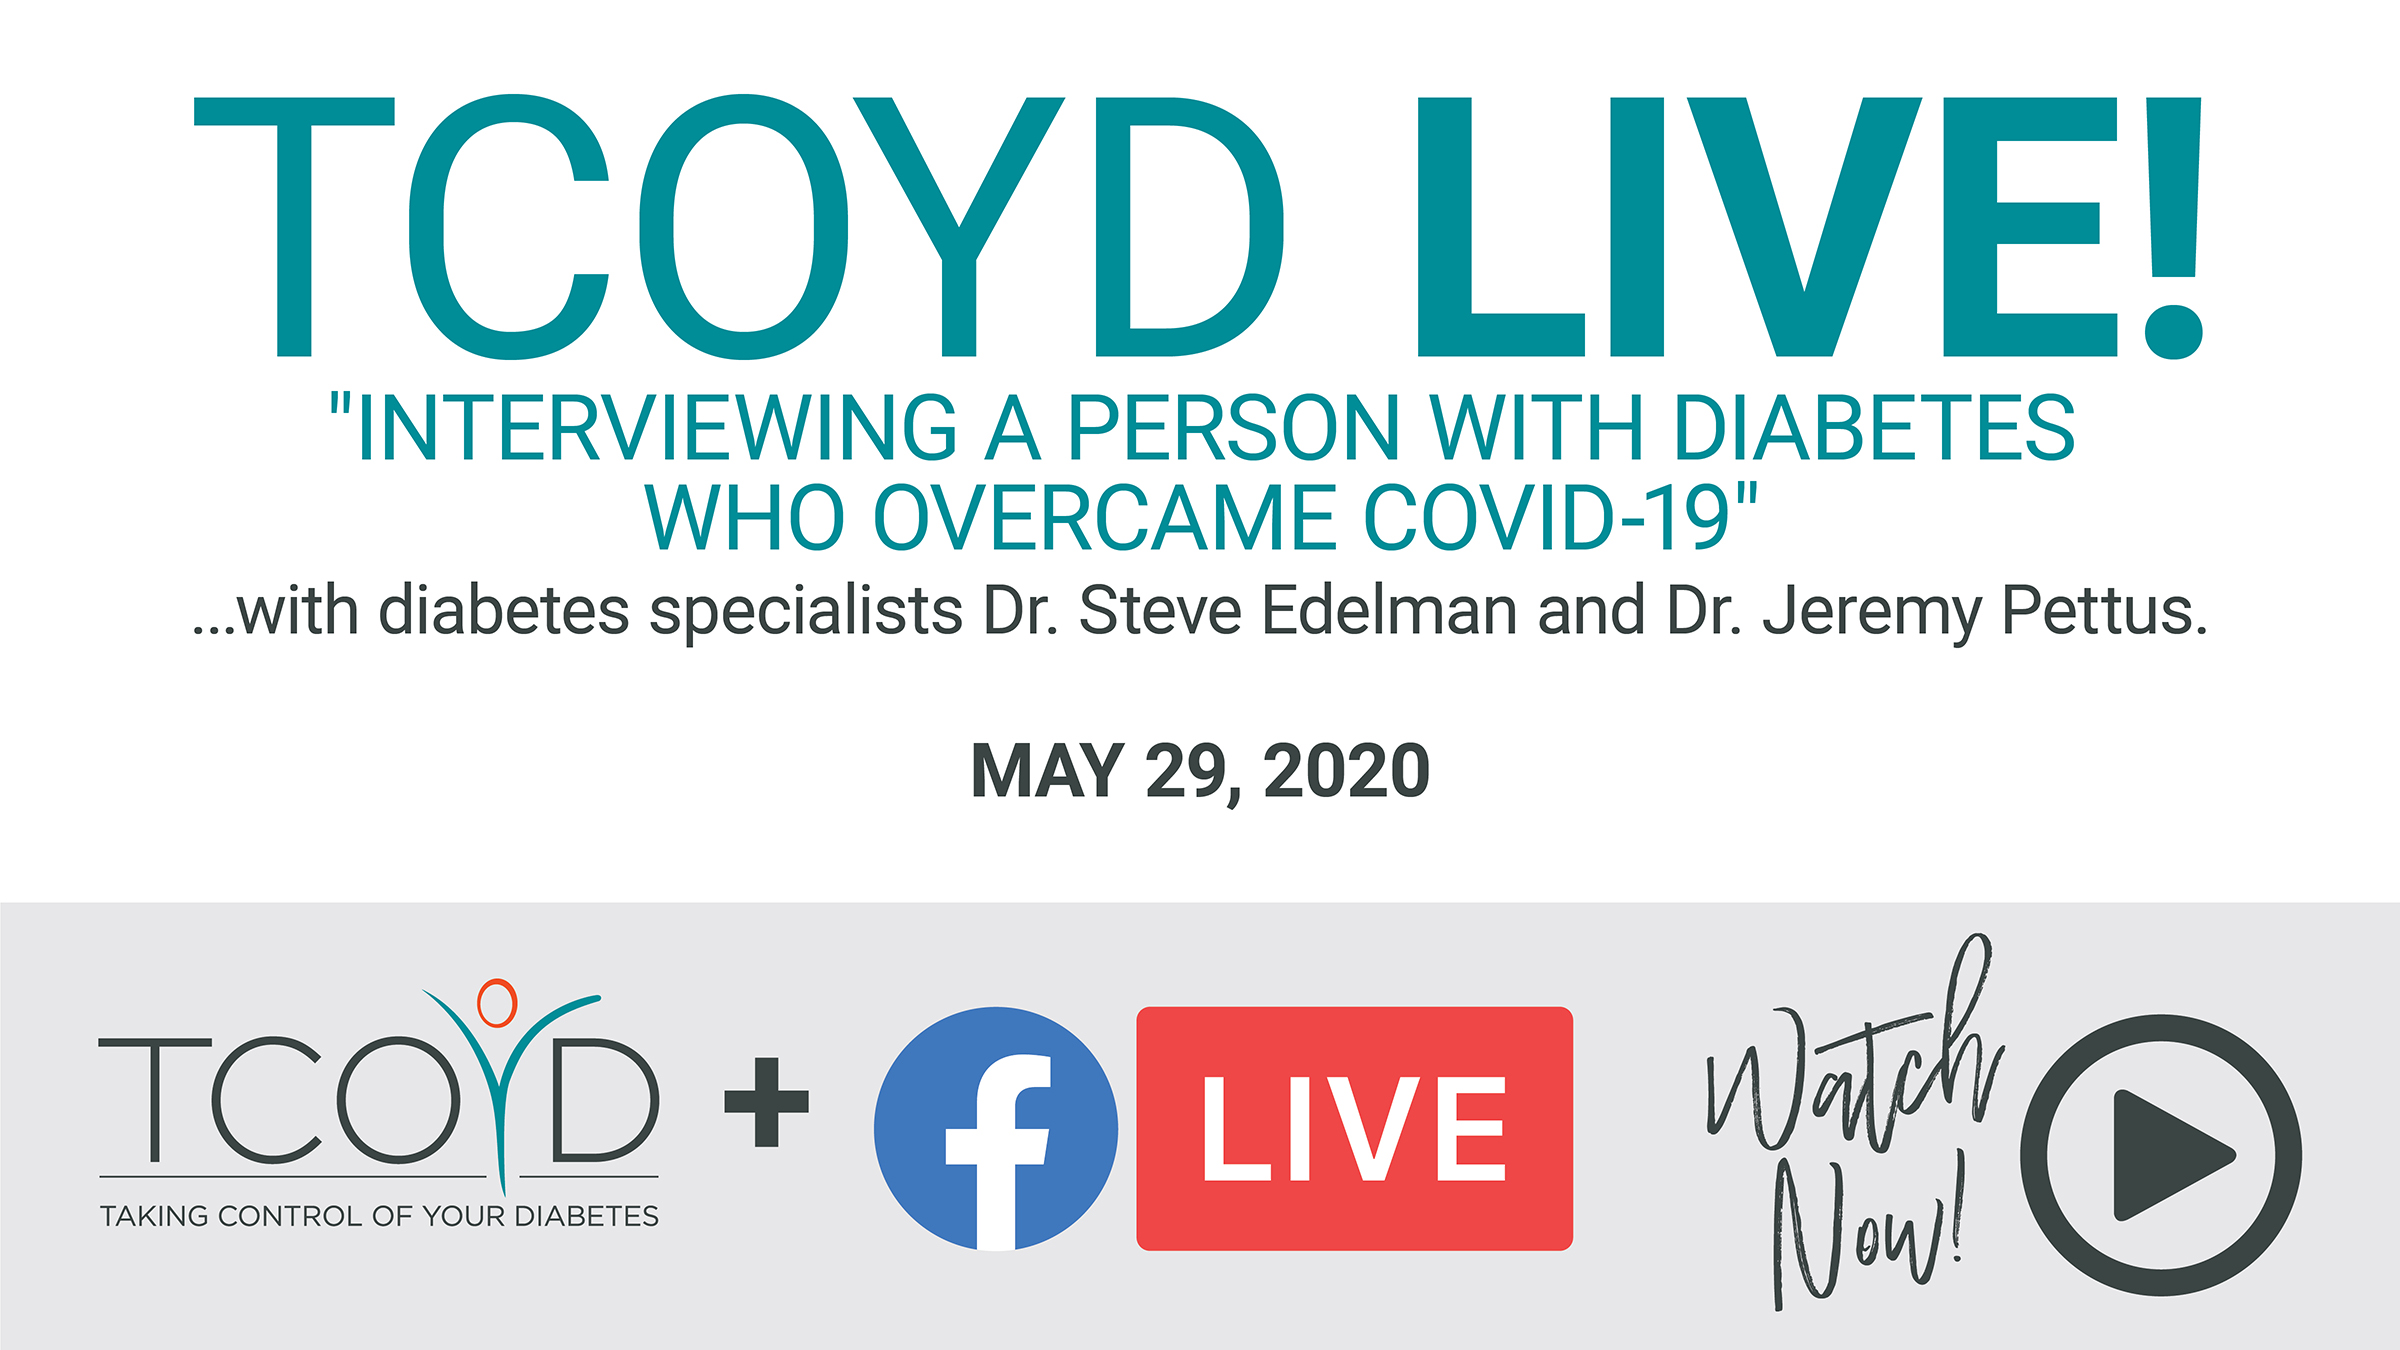 TCOYD Facebook Live: A Personal Account of COVID-19 & Diabetes